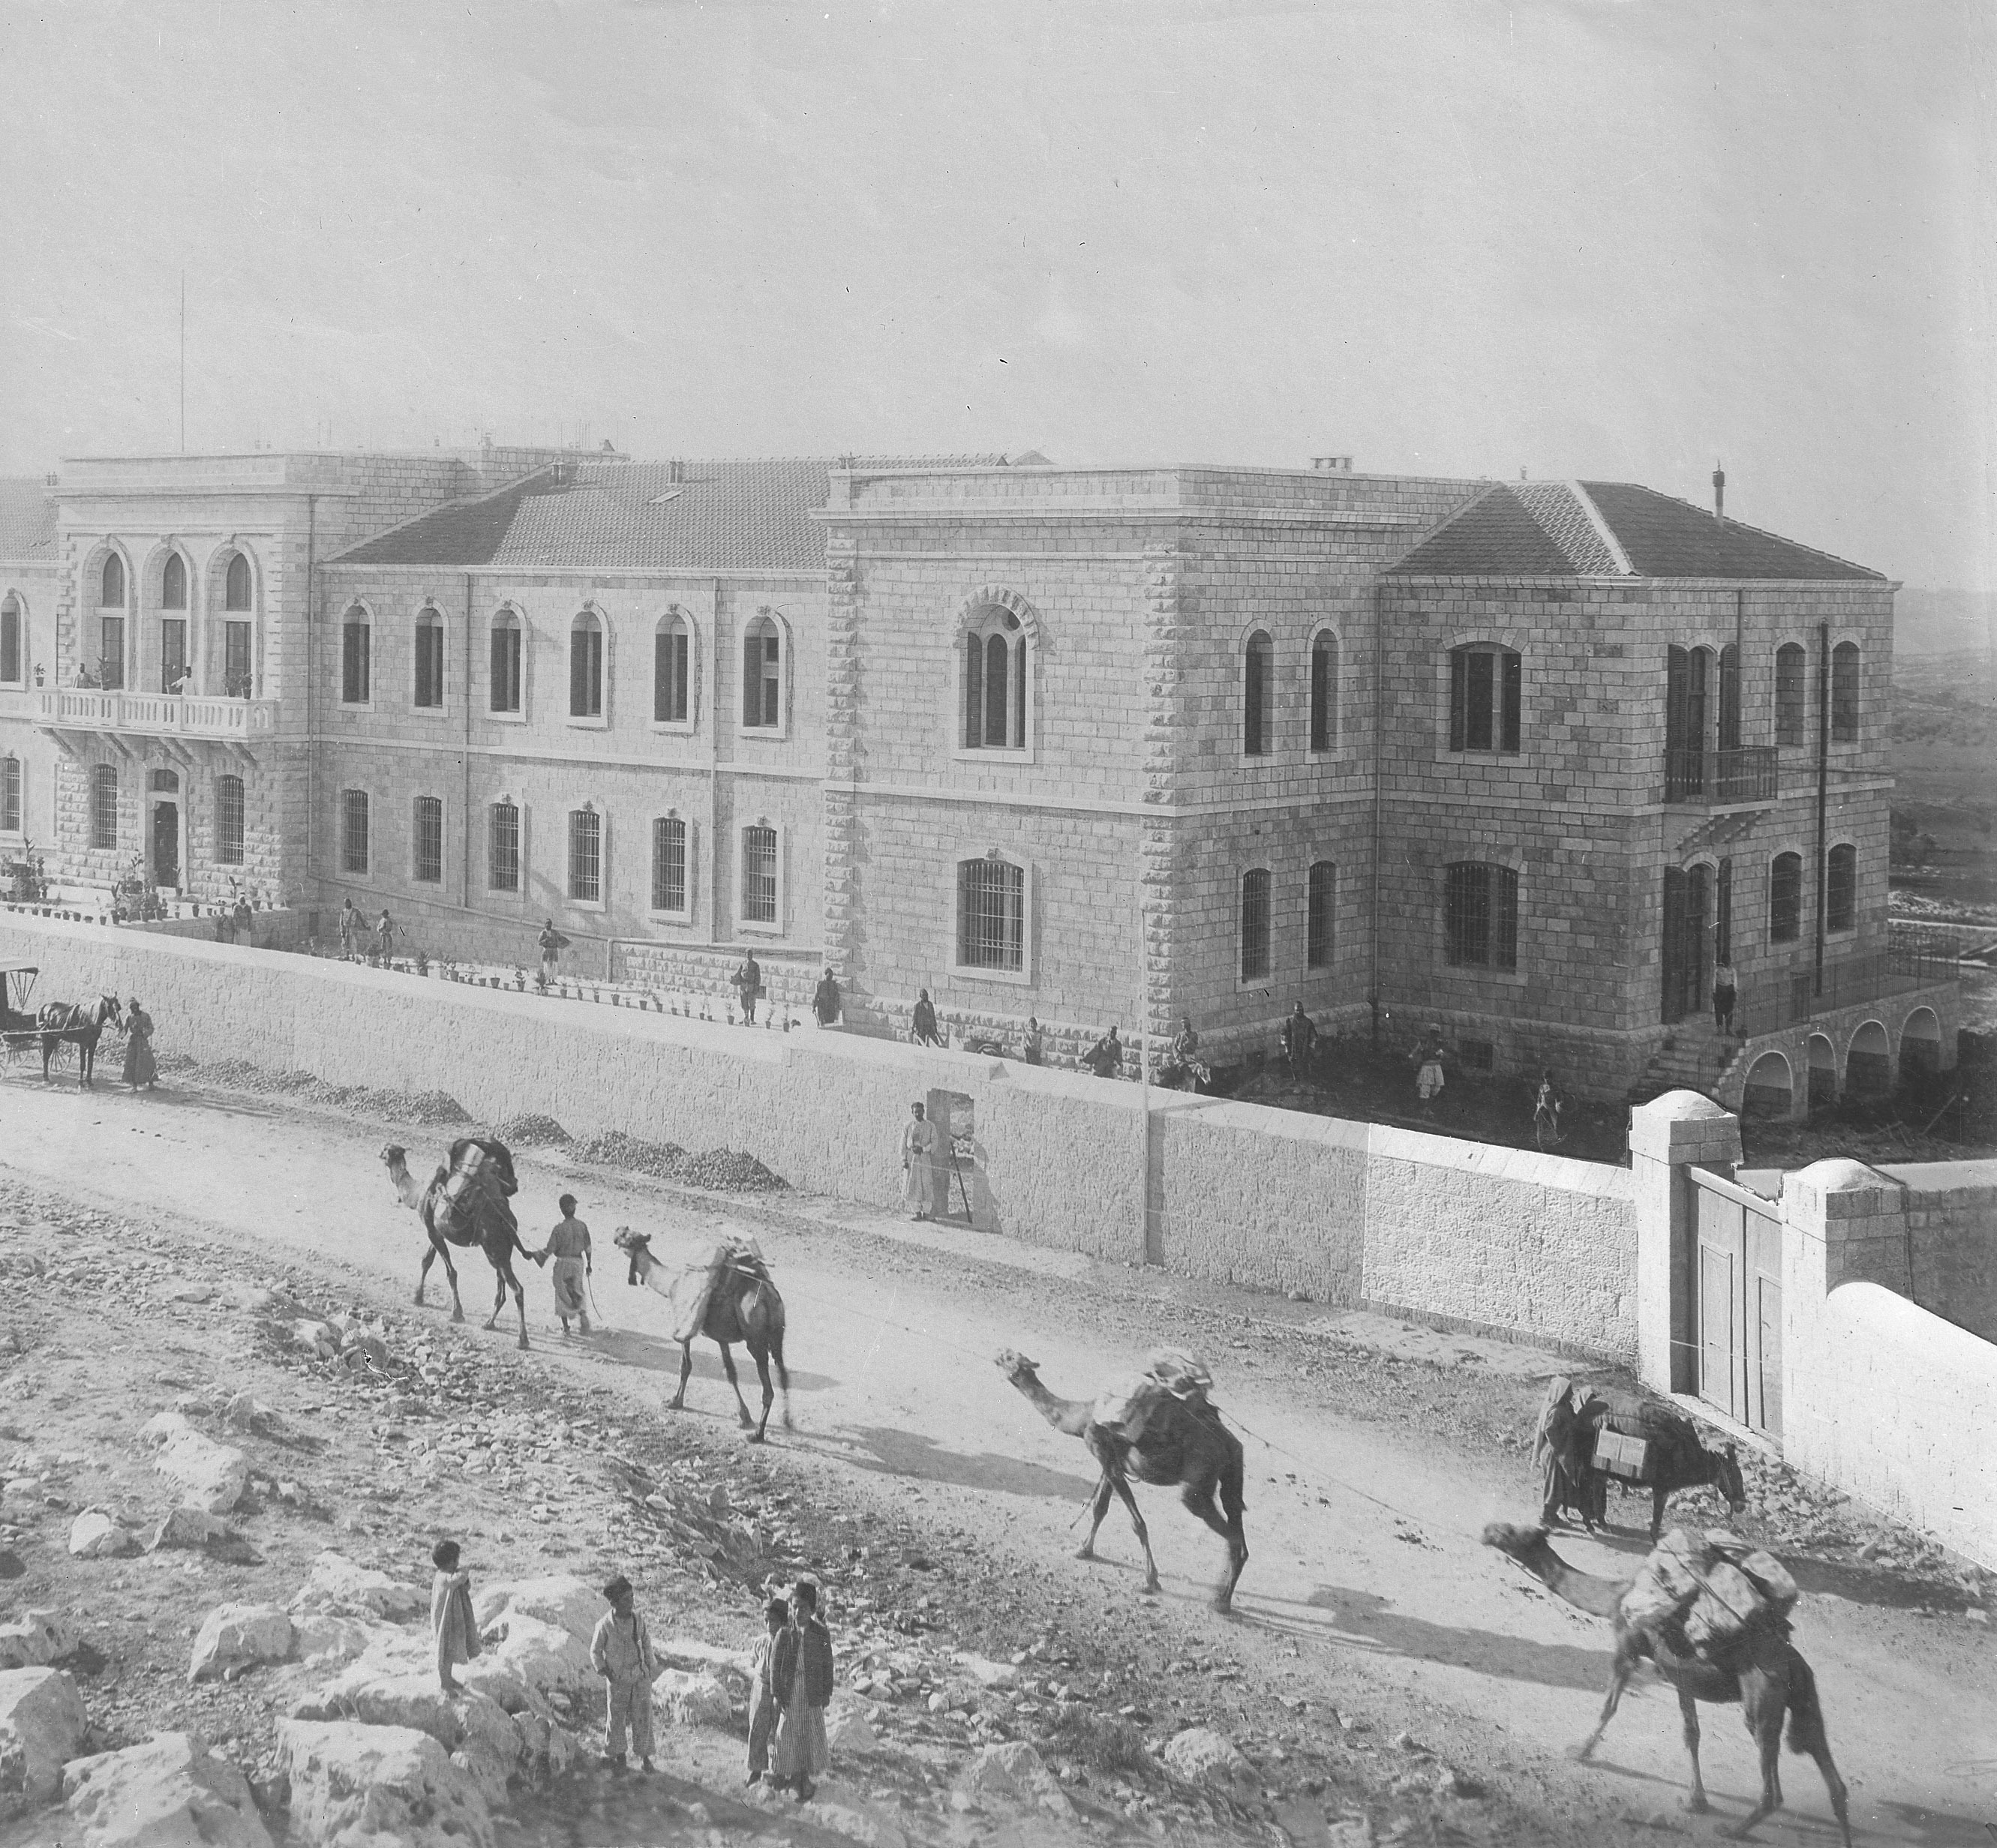 Shaare Zedek - the original building